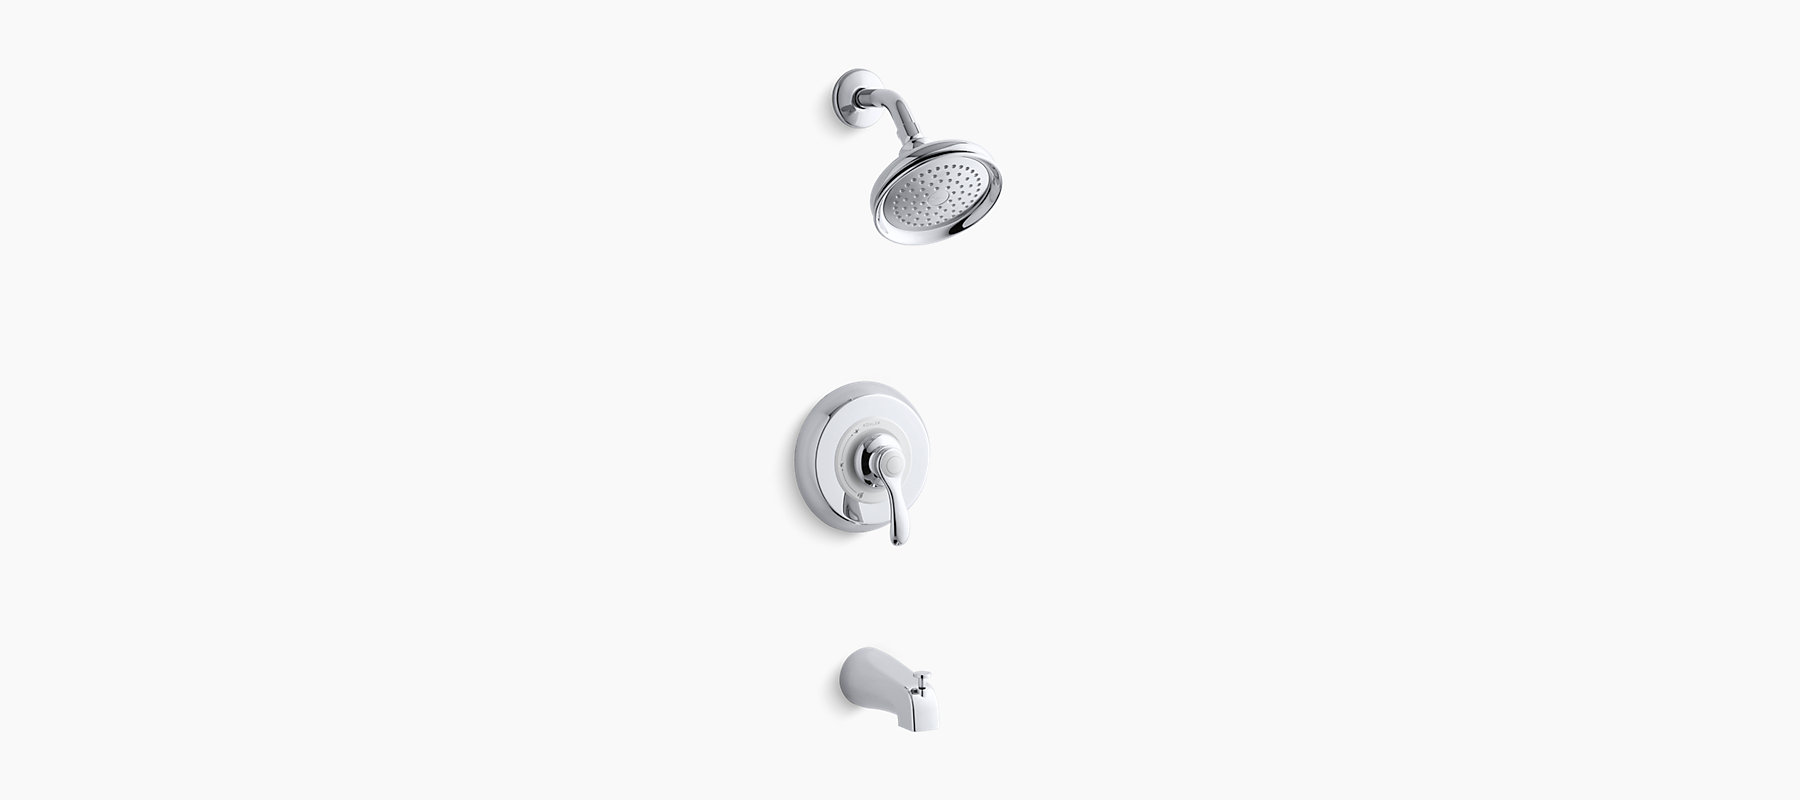 in and inspiration faucet bath innovative new shower lostark ideas co heads parts faucets bathroom kohler